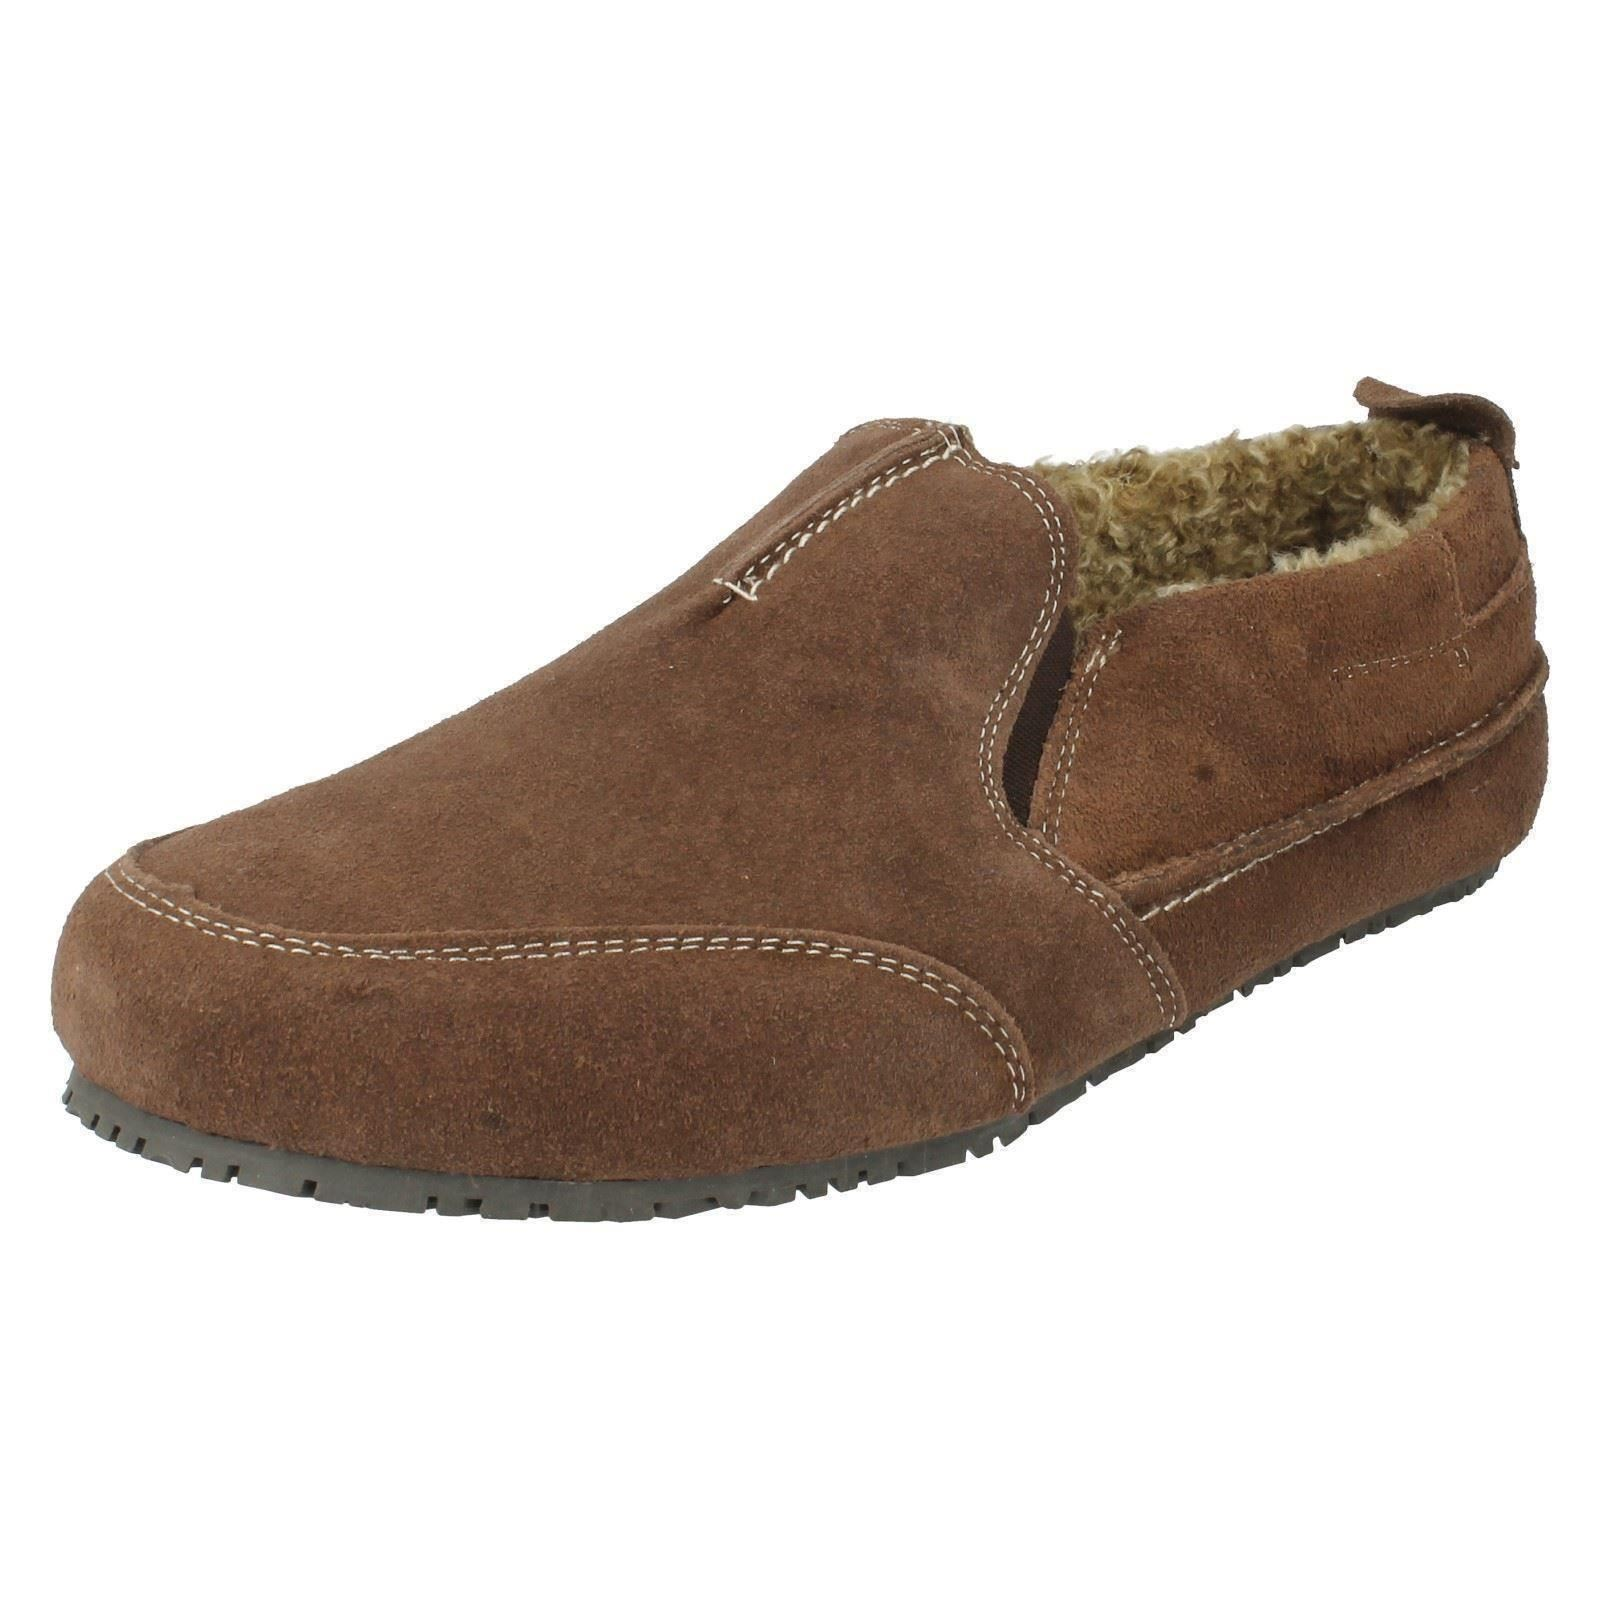 Men's Clarks Slippers Label - Kite Laser